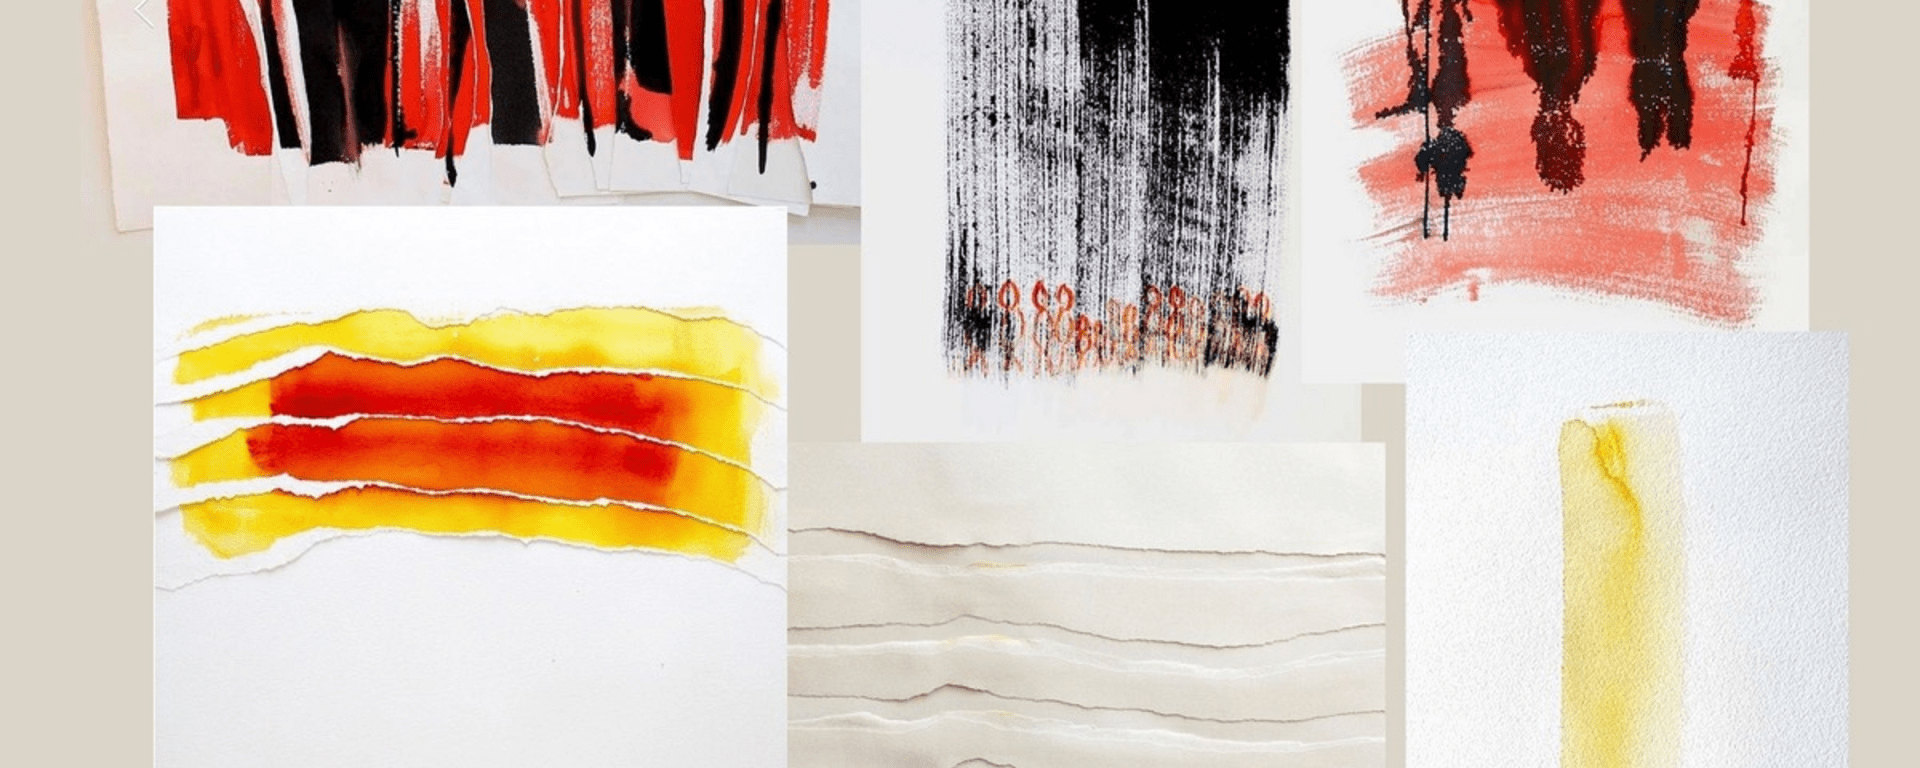 Five rectangular pieces of white paper with red, black, and yellow prints.